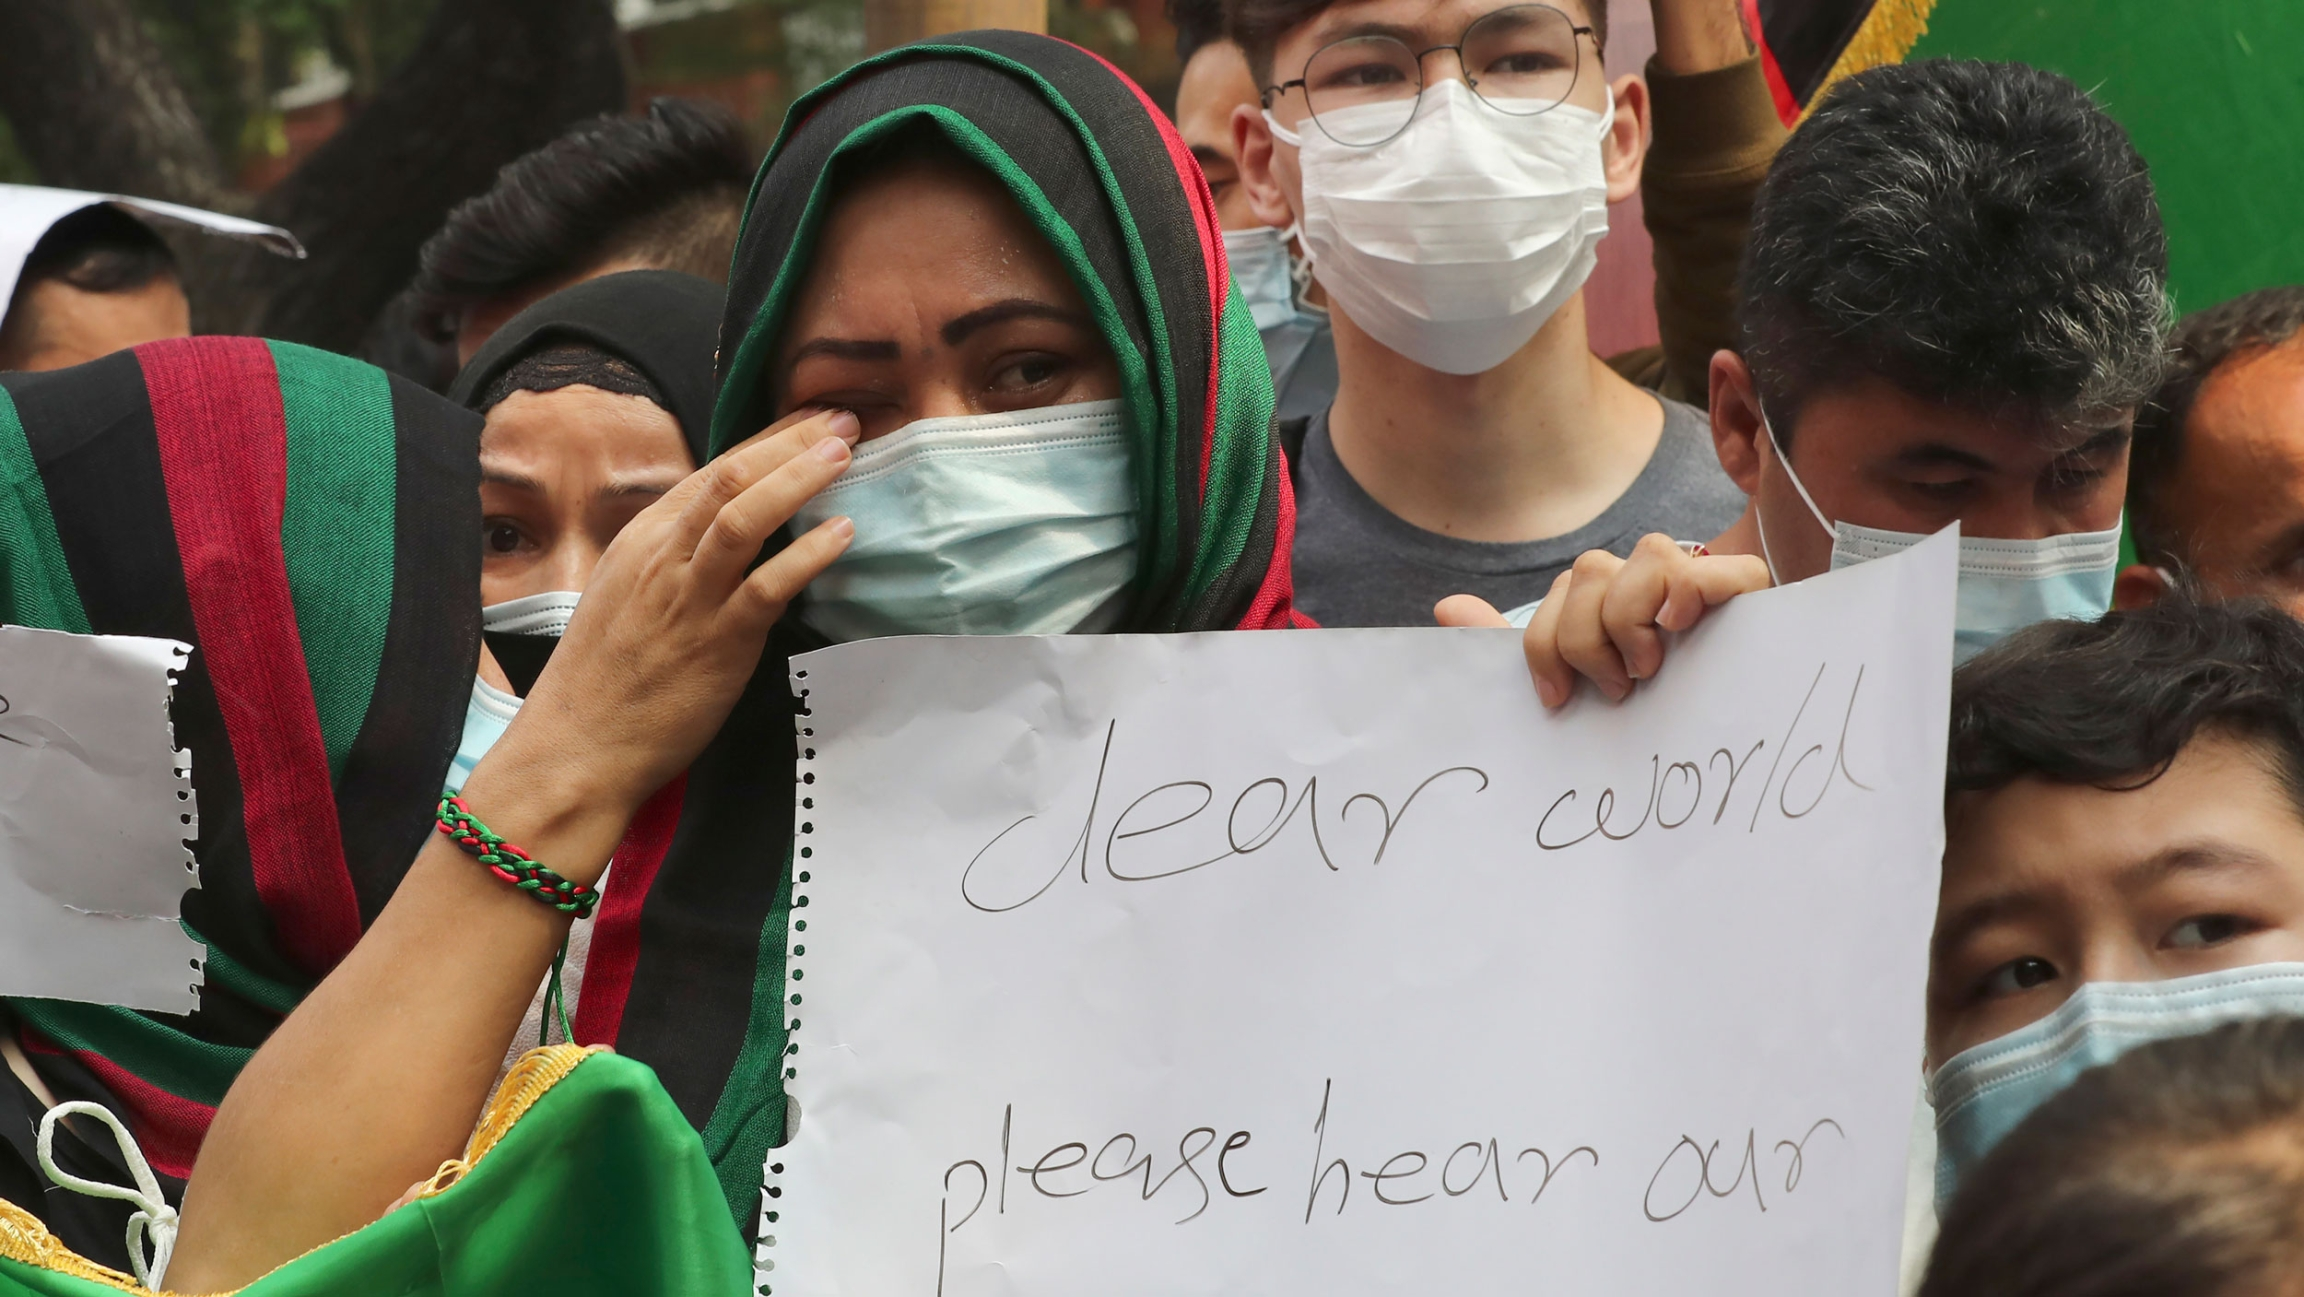 An Afghan woman weeps as she holds a poster during a rally outside the building that houses UNHCR representative office in Jakarta, Indonesia, Tuesday, Aug. 24, 2021.